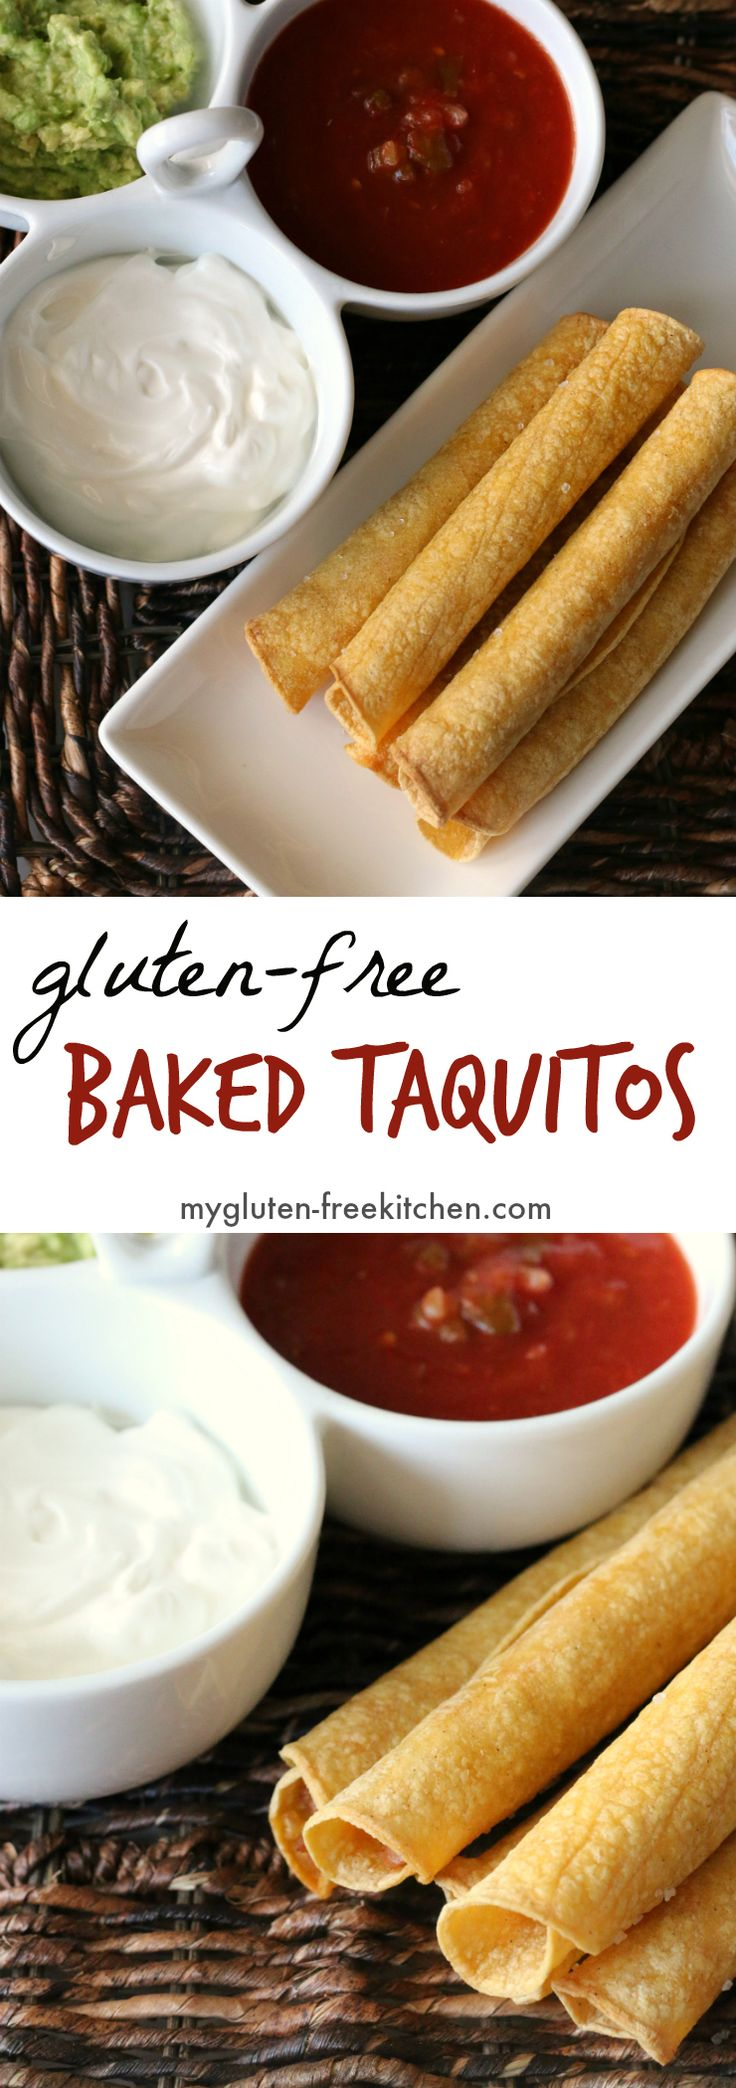 Gluten-free Baked Taquitos Recipe.  Love this for an appetizer for the big game!